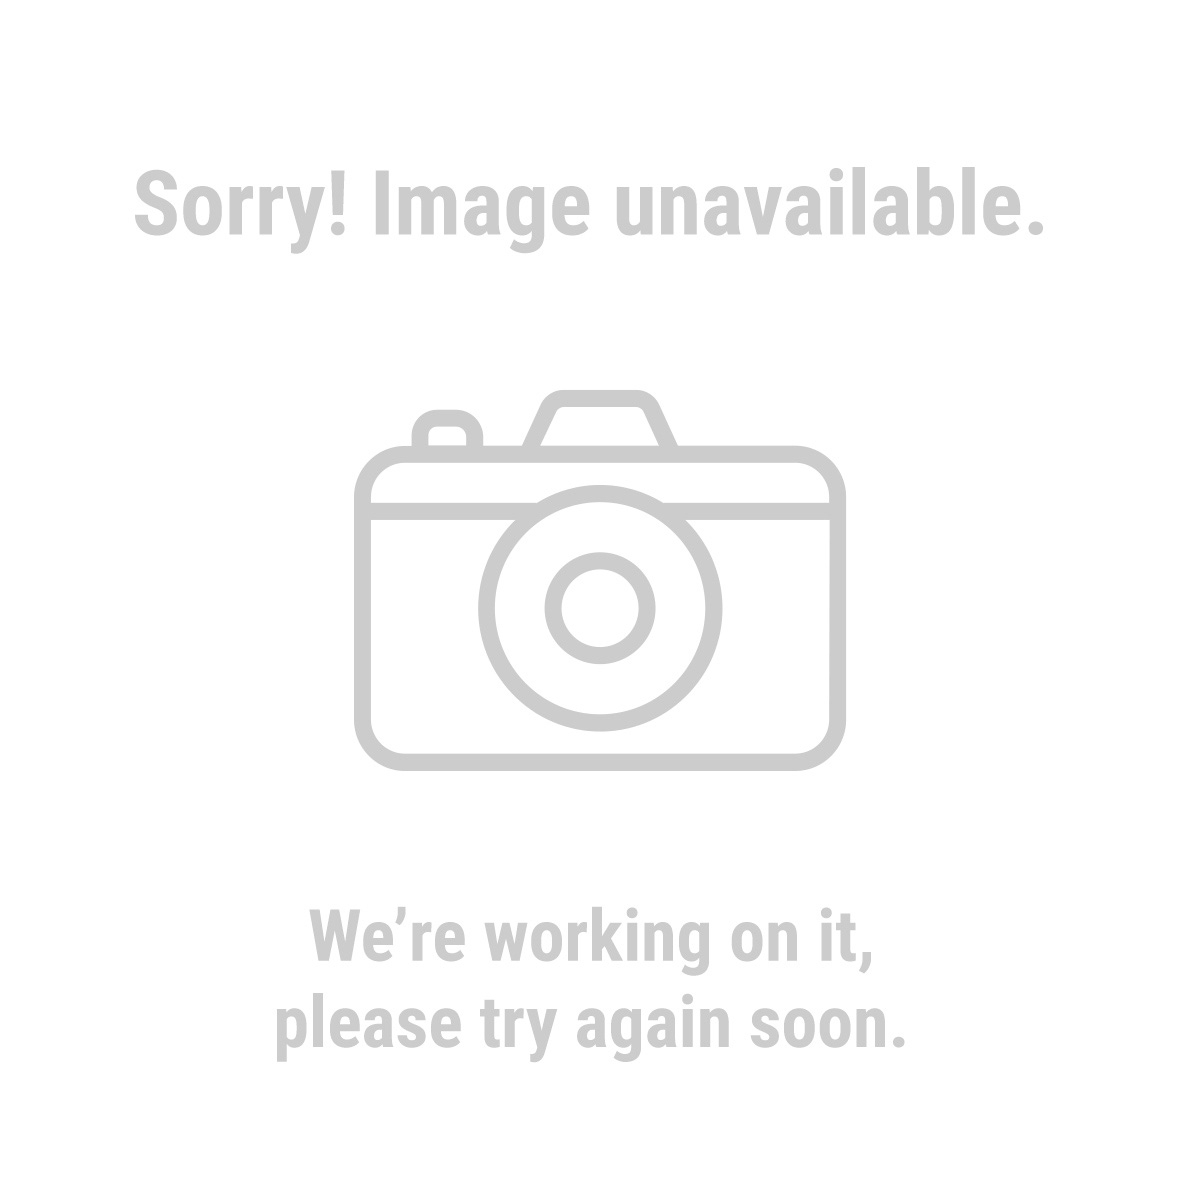 HARDY 66375 Nylon Knit Gloves with Nitrile Palms, Medium